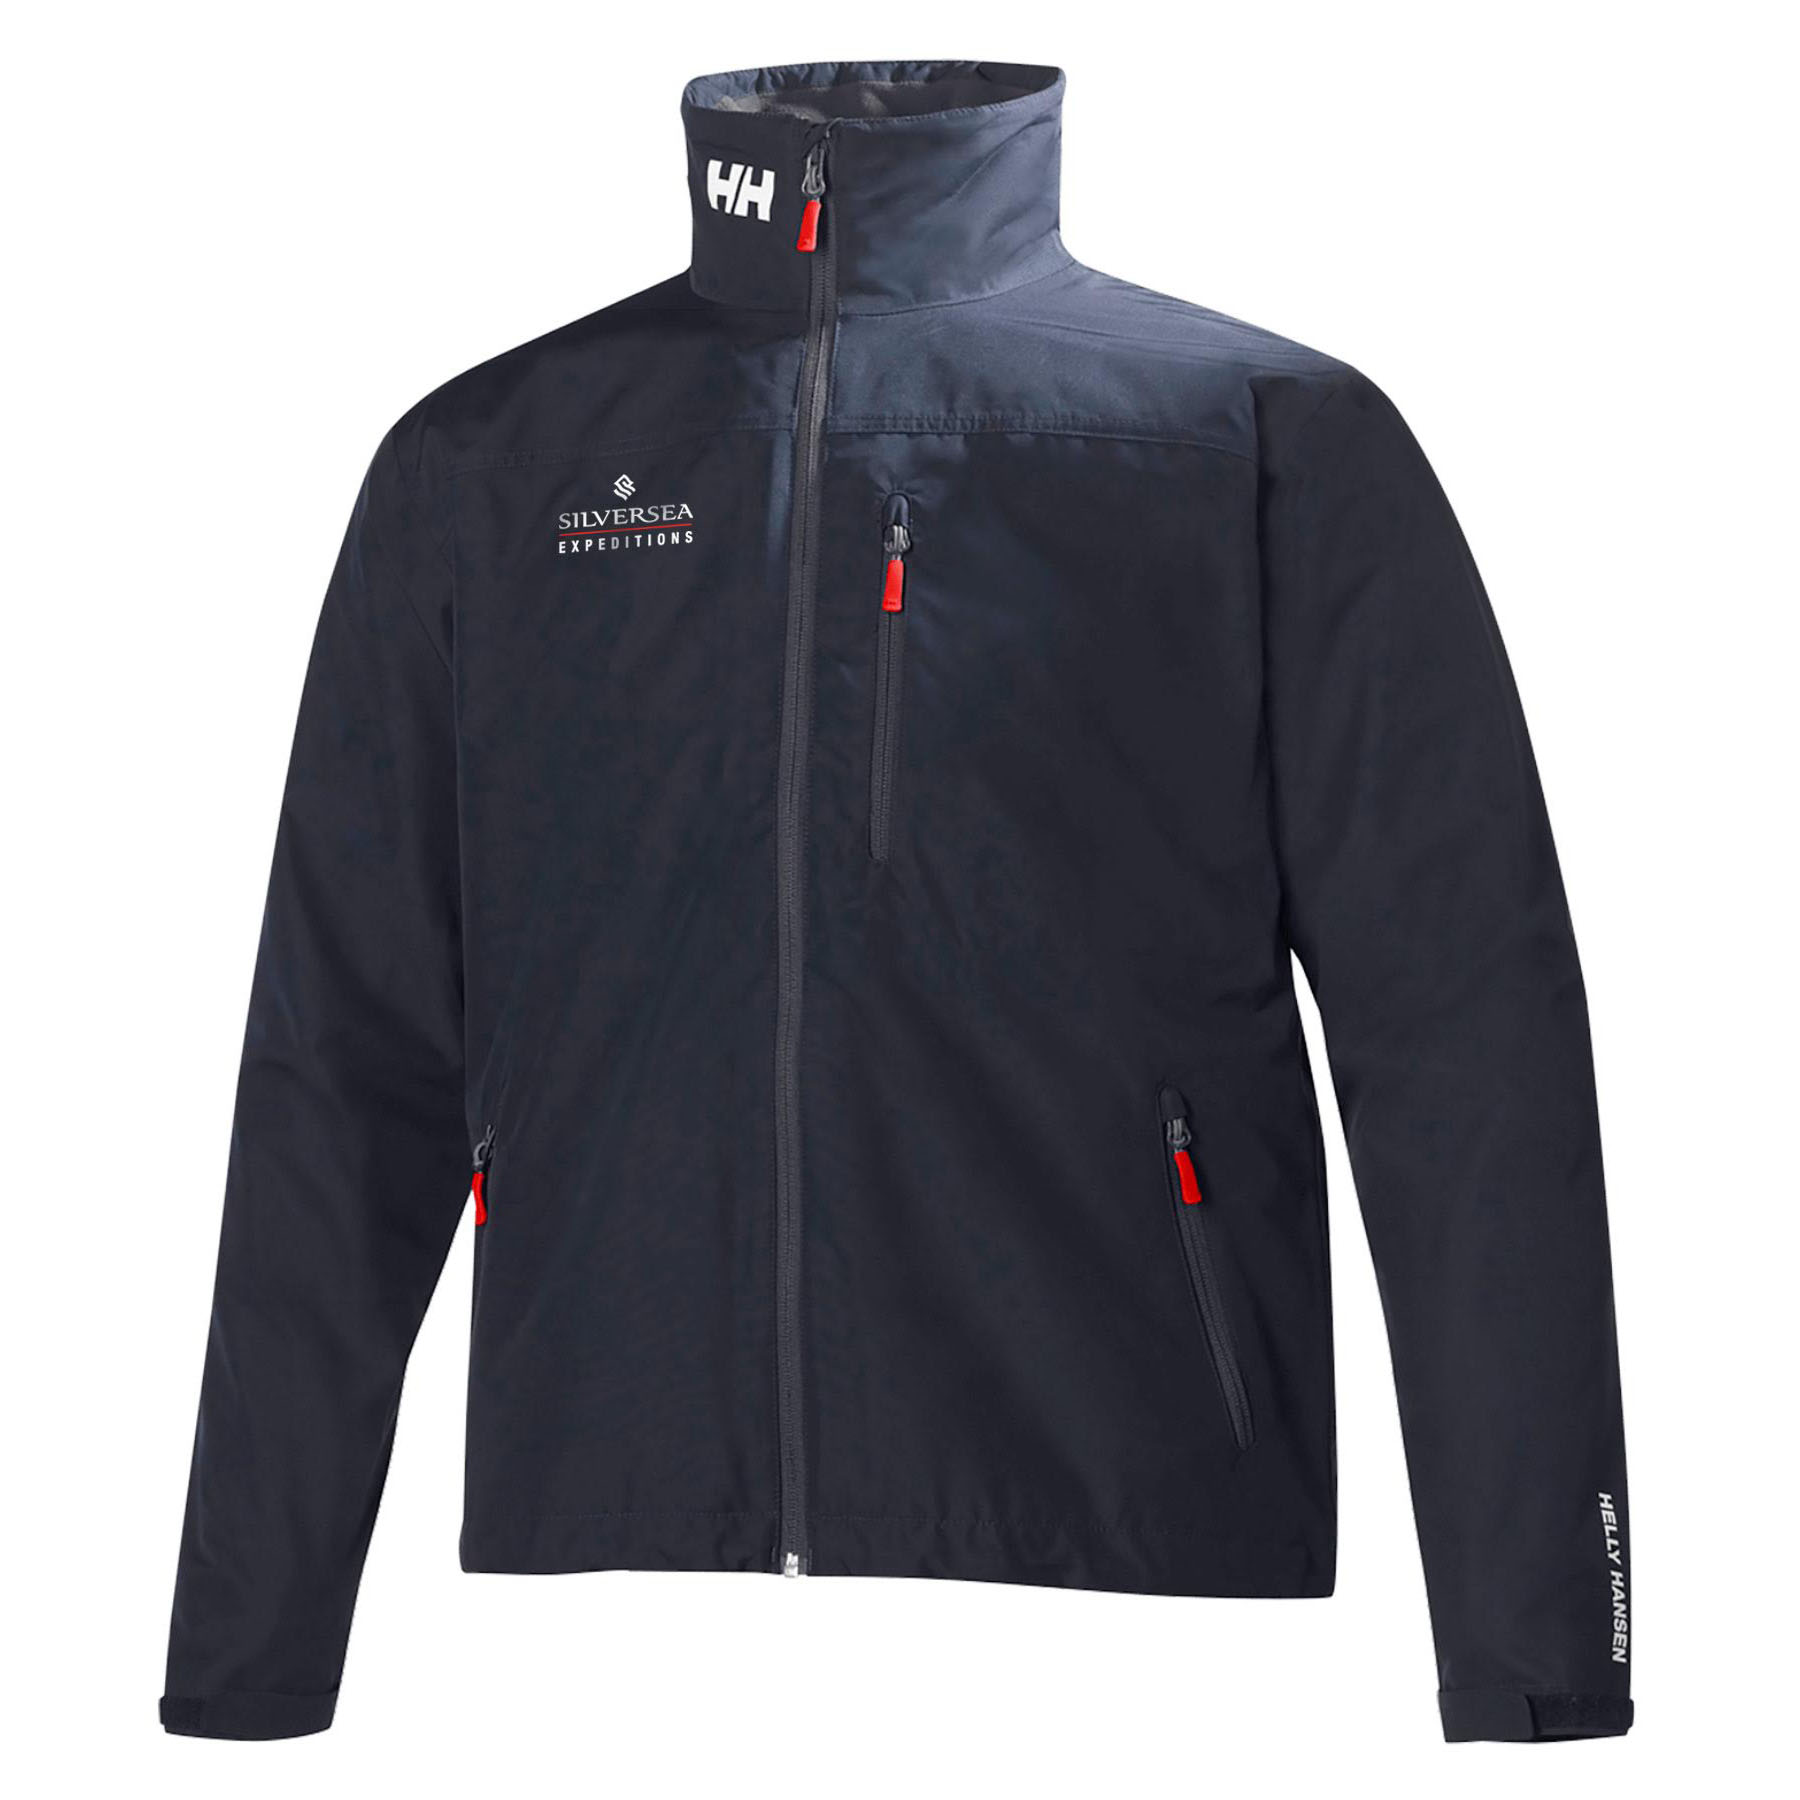 waterproof windproof and breathable with a silversea